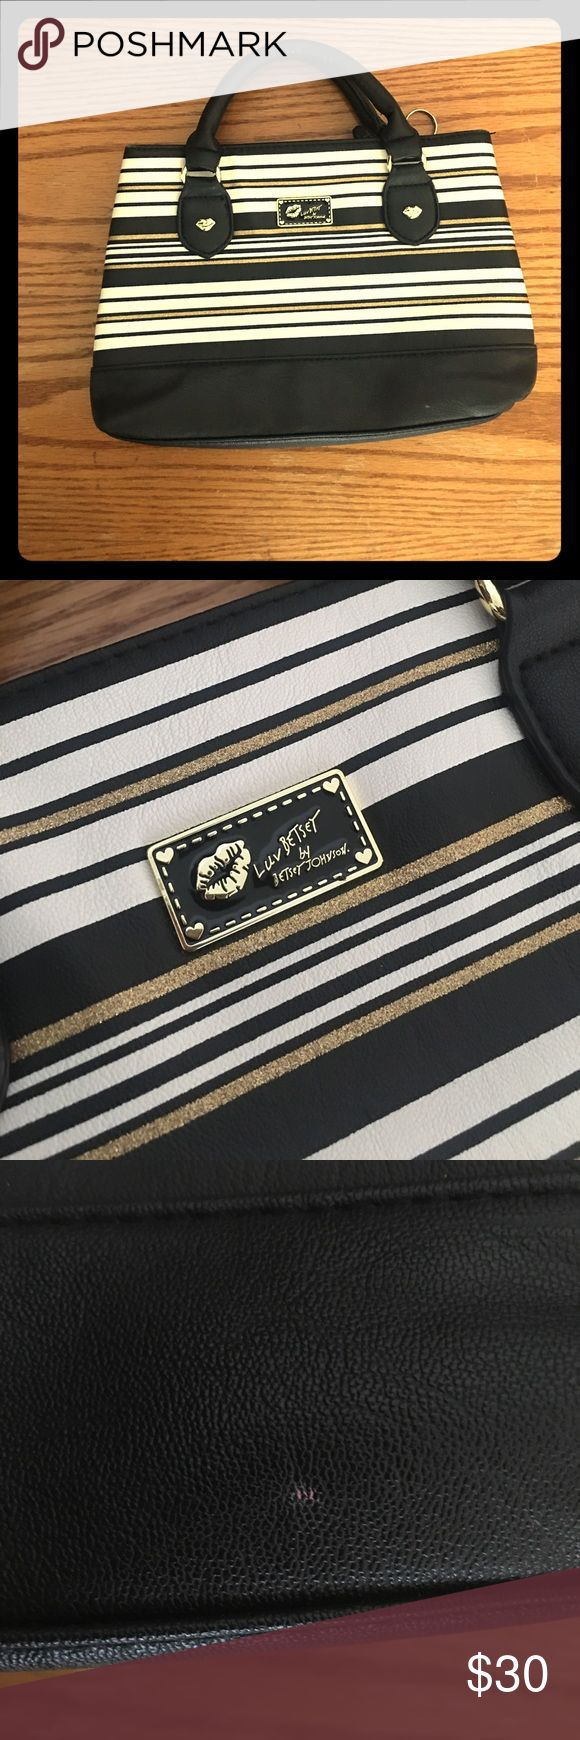 Luv Betsey by Betsey Johnson Black White Gold Mini Super cute mini purse. Luv Betsey by Betsey Johnson. Black white && gold. 11in X 7.5in. Used a few time but like new. Also the handles have some numbers written on it. I bought it like that. I will ship within 24hours most of the times. Please follow me as I will be cleaning my closet && posting a lot of clothes, shoes, makeup, bags, && a lot of other accessories. I am trying to make extra money to pay off student loans. Please ask any…